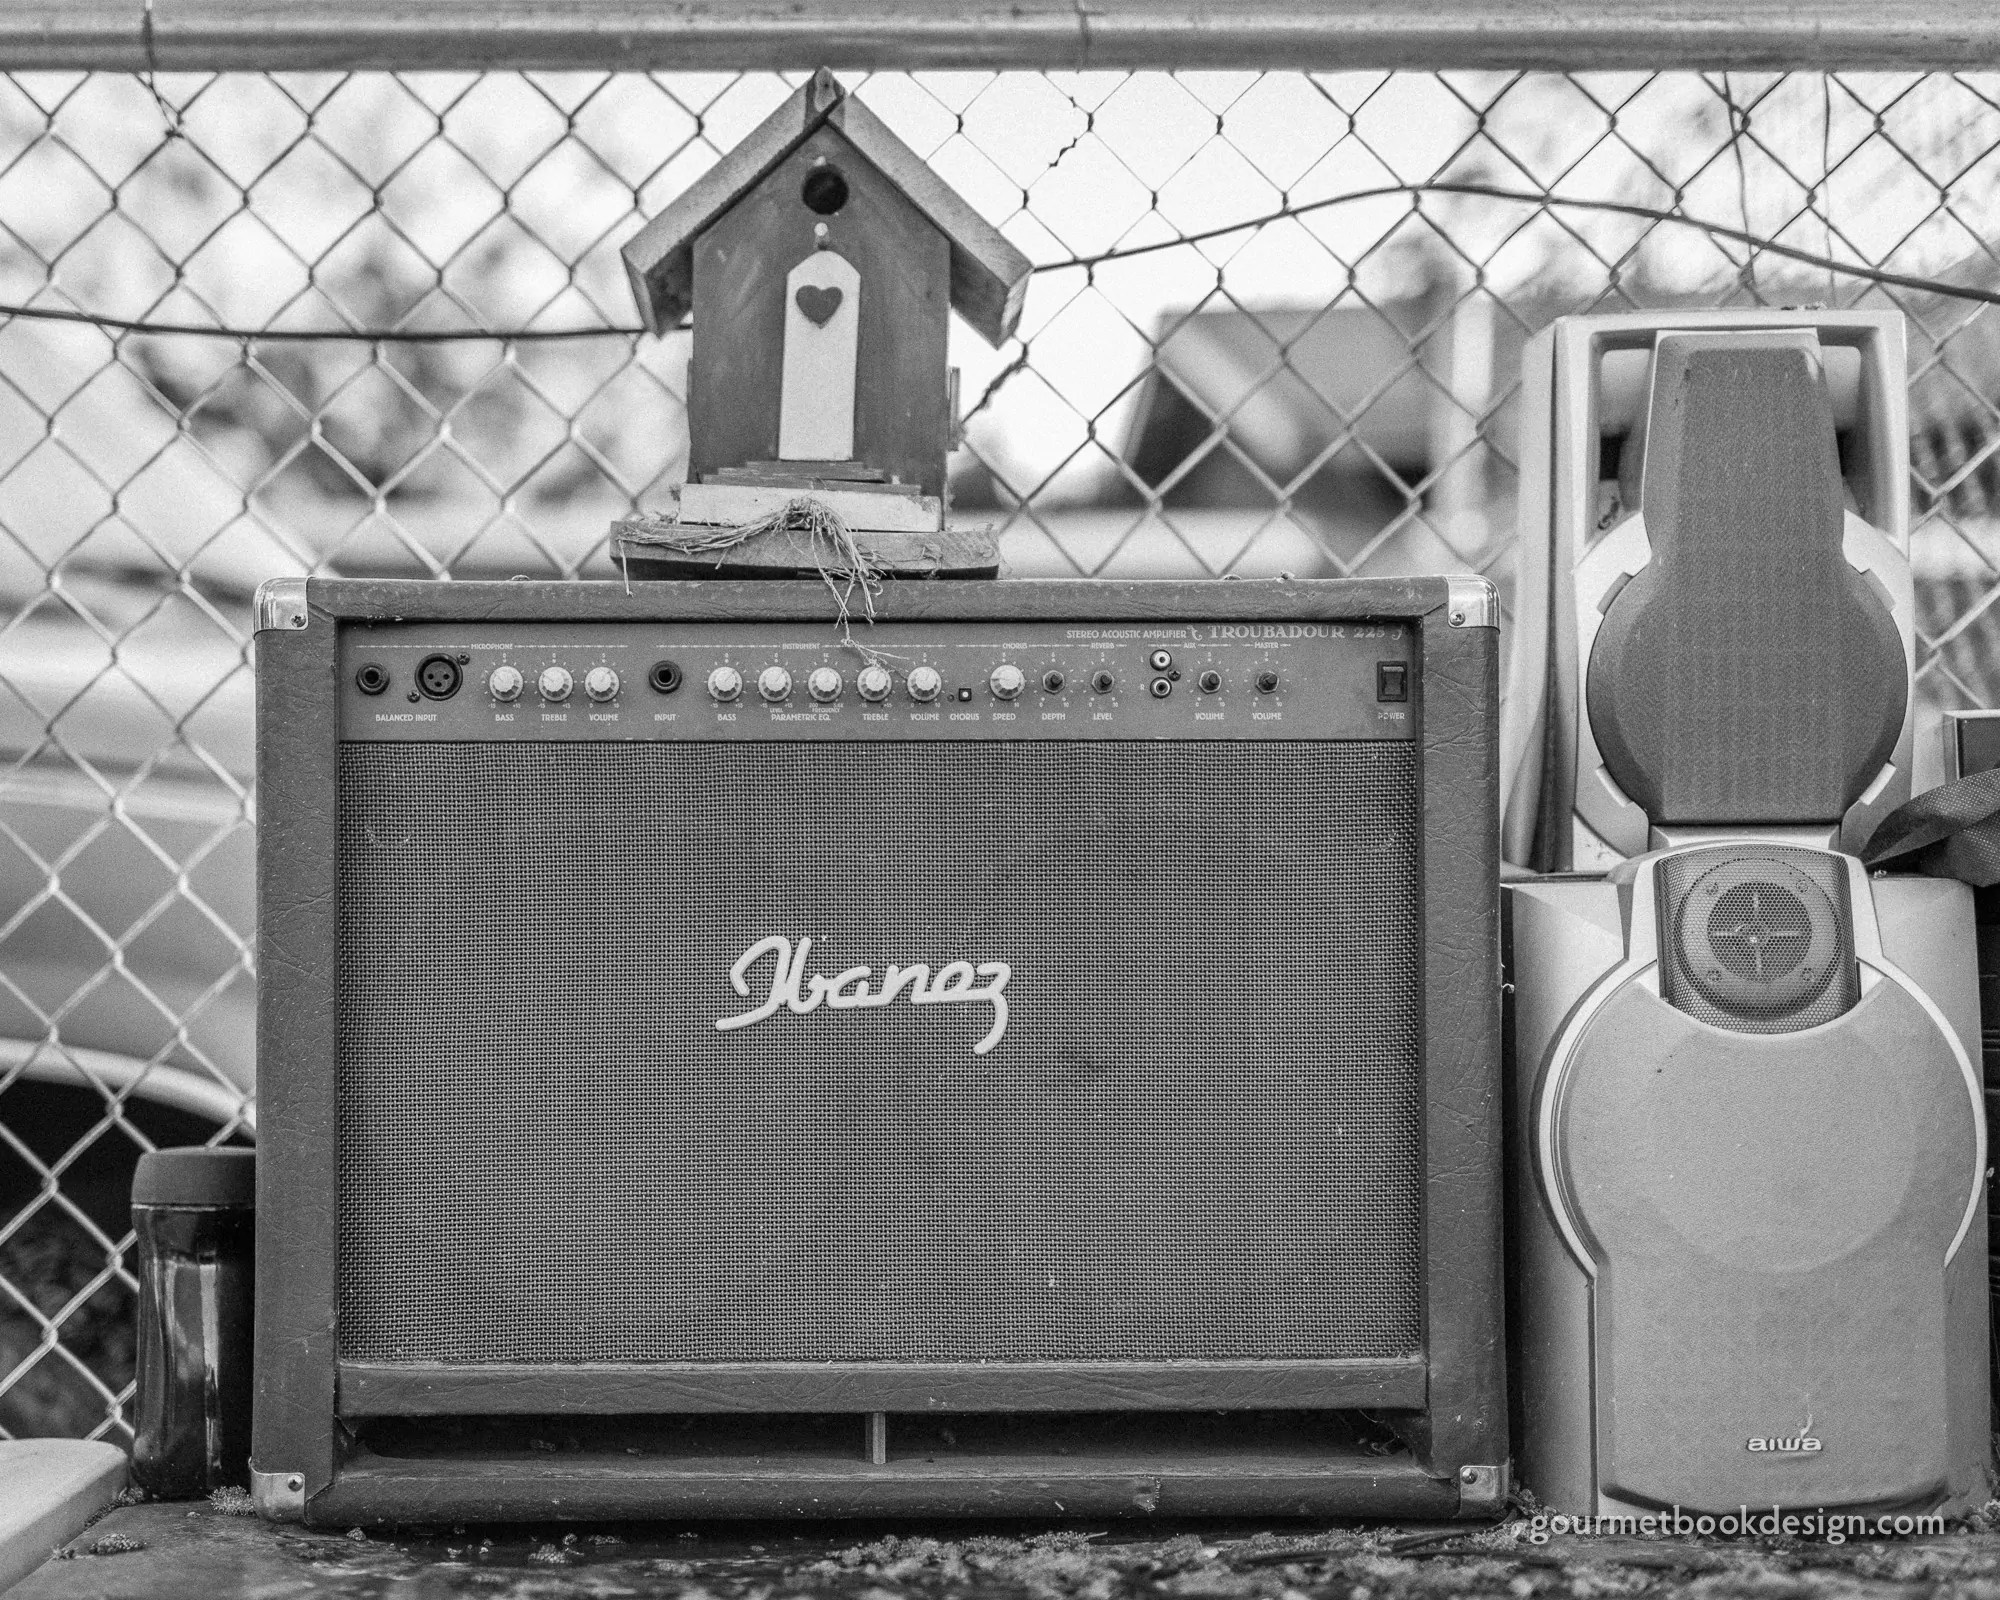 Outdoor guitar amp in the South Valley: Shotgun justice